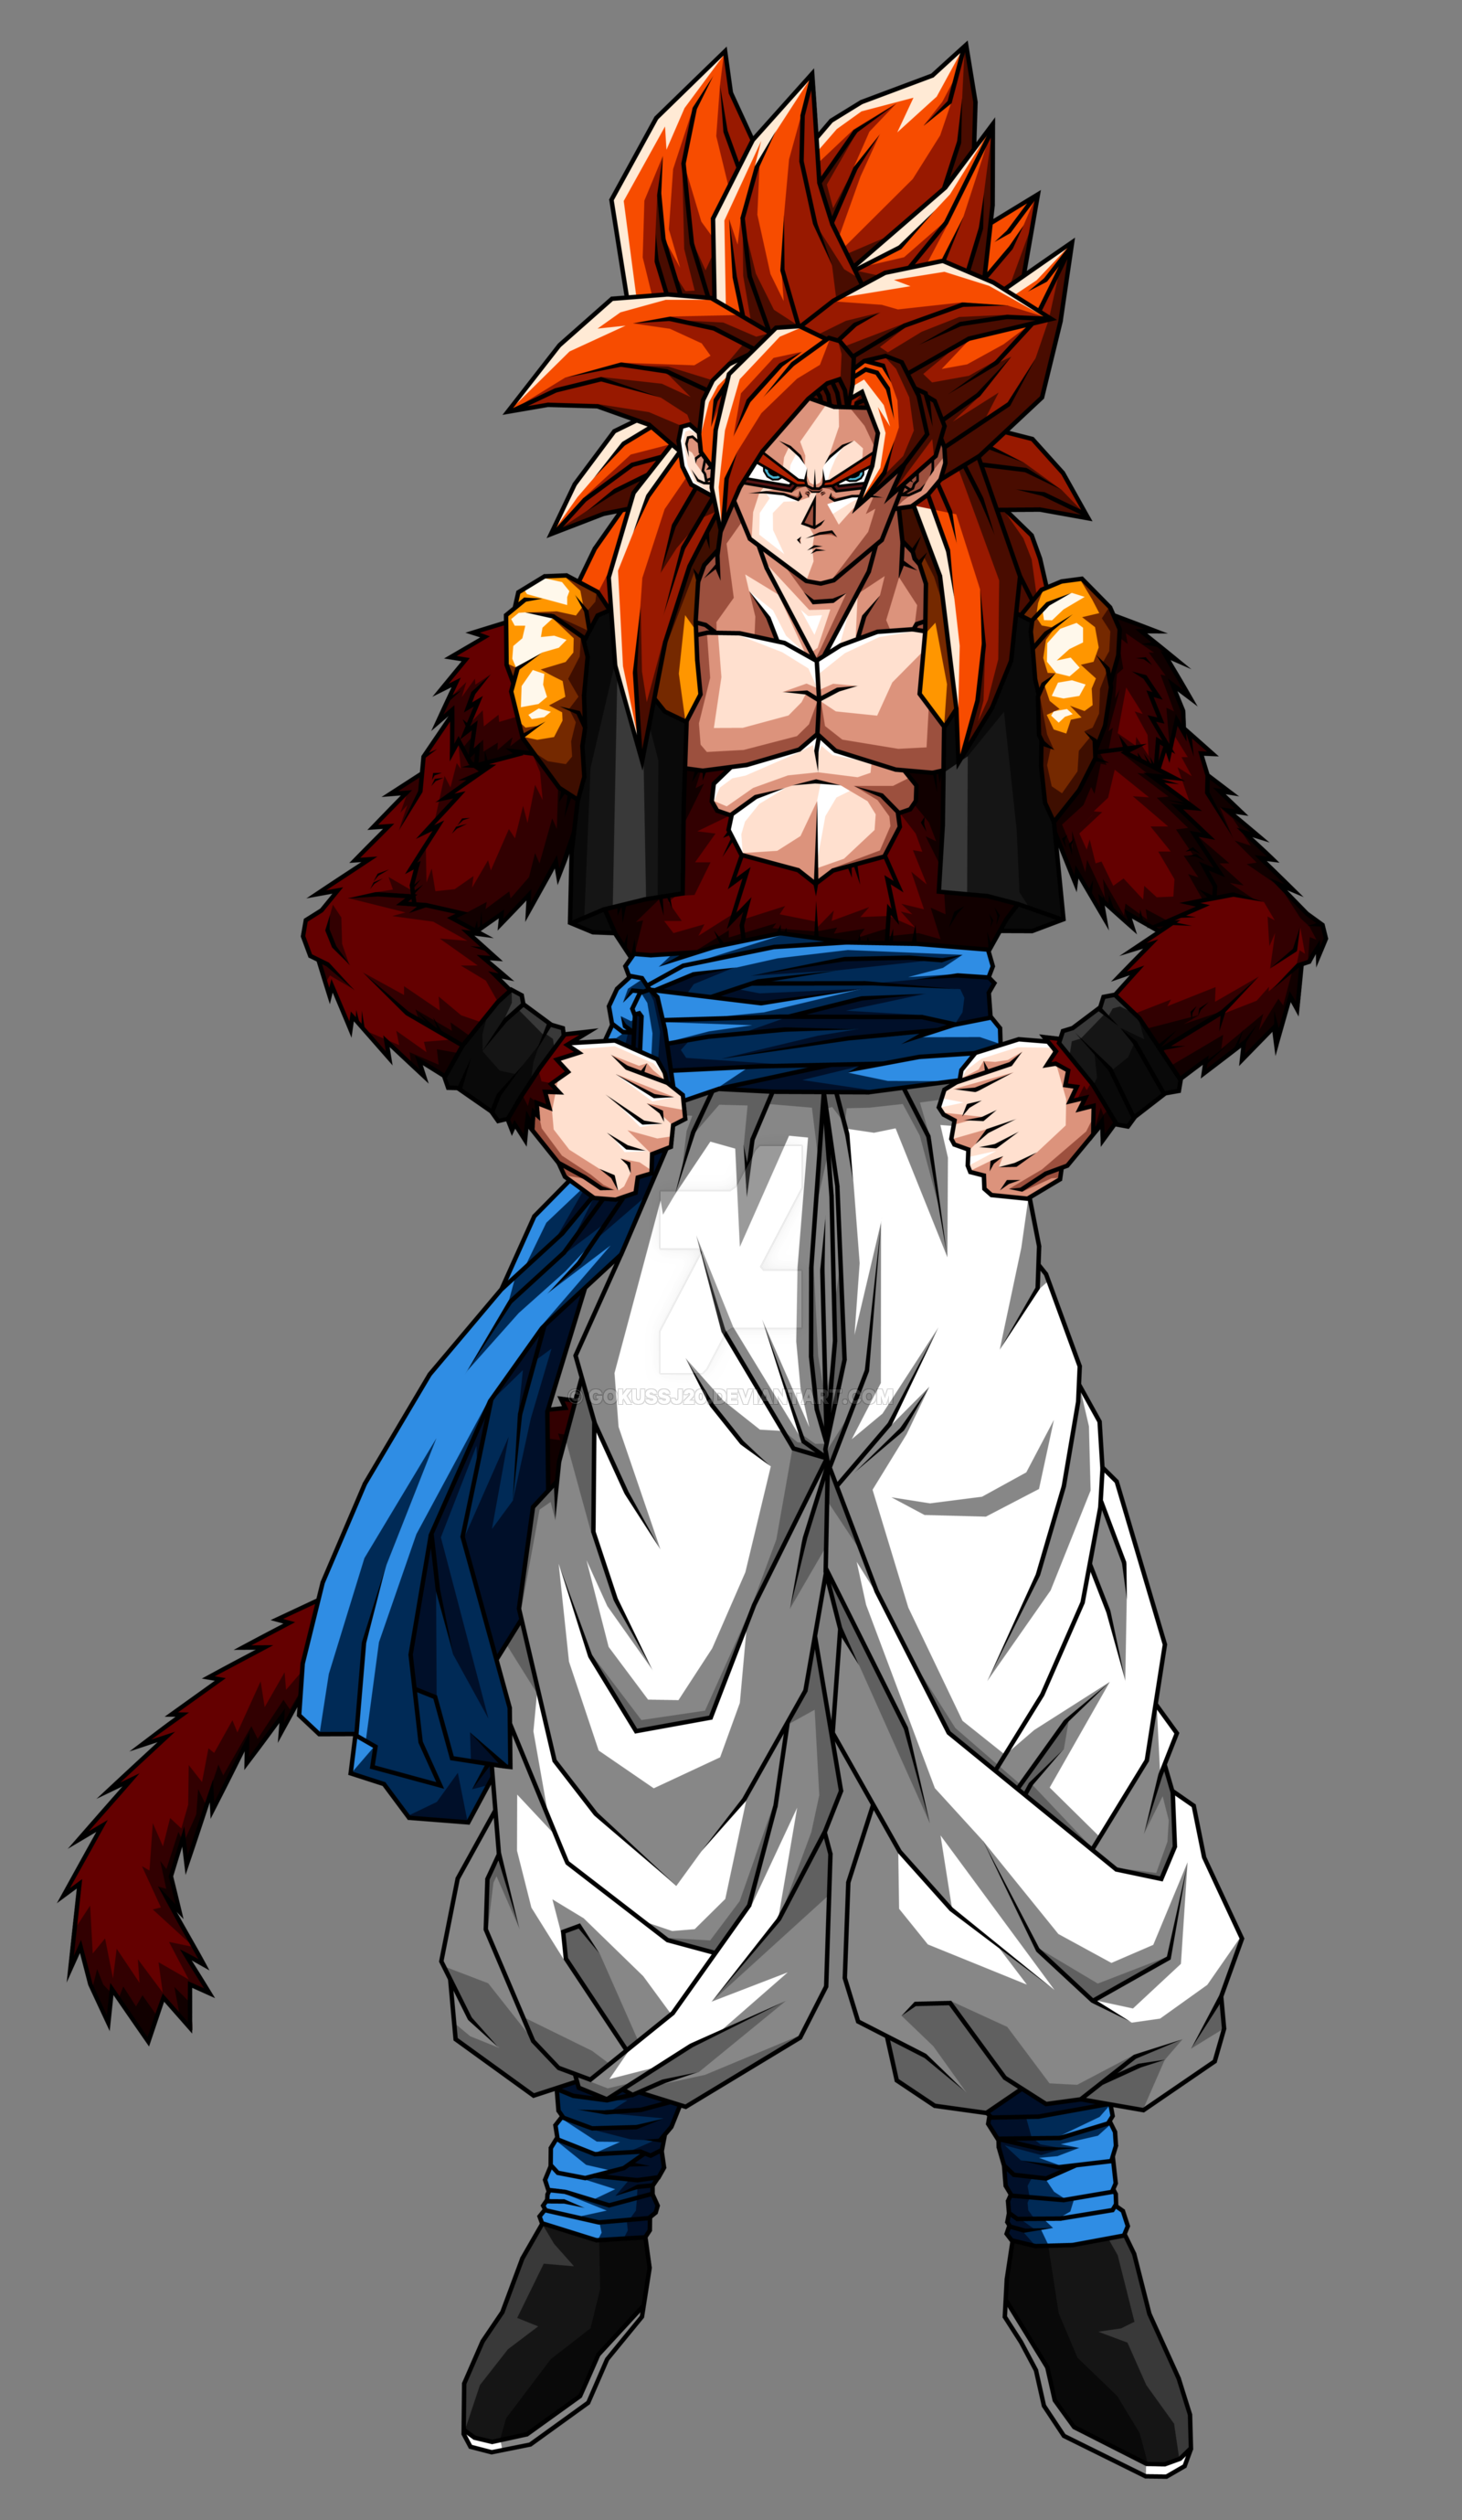 Gogeta ssj4 wallpaper wallpapersafari - Dragon ball gt goku wallpaper ...